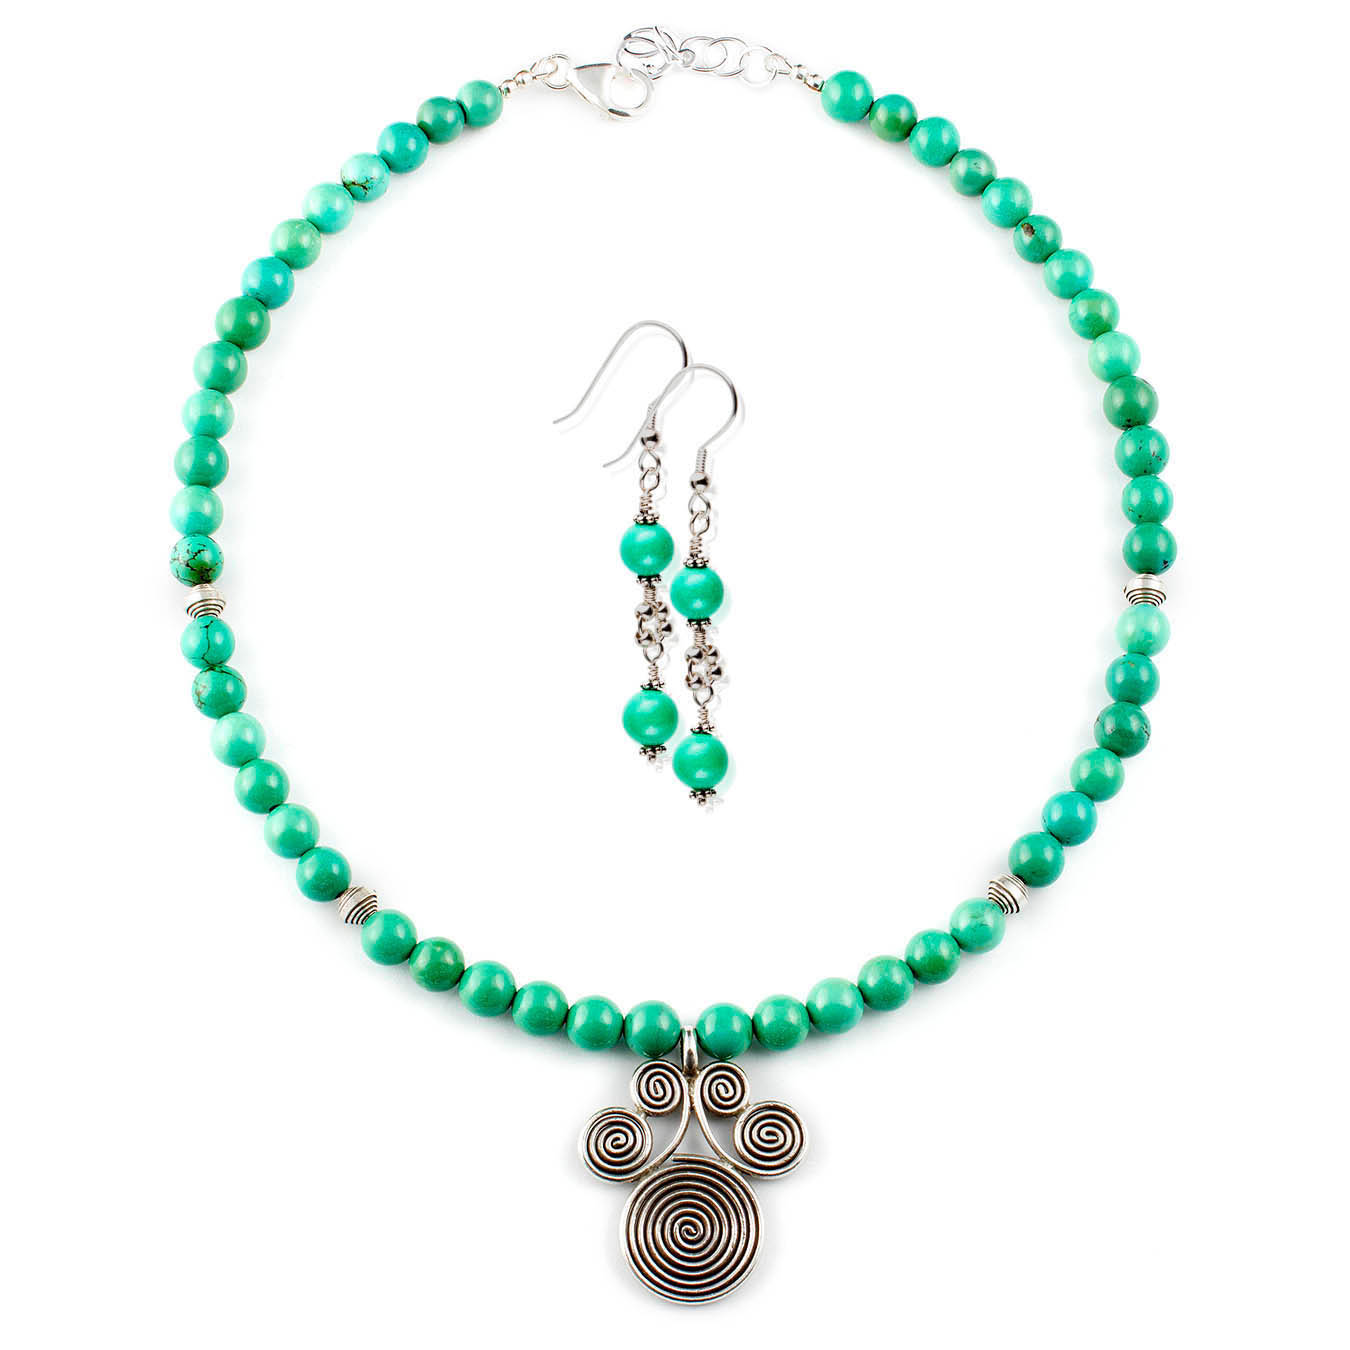 December birthstone necklace set made with turquoise and thai silver